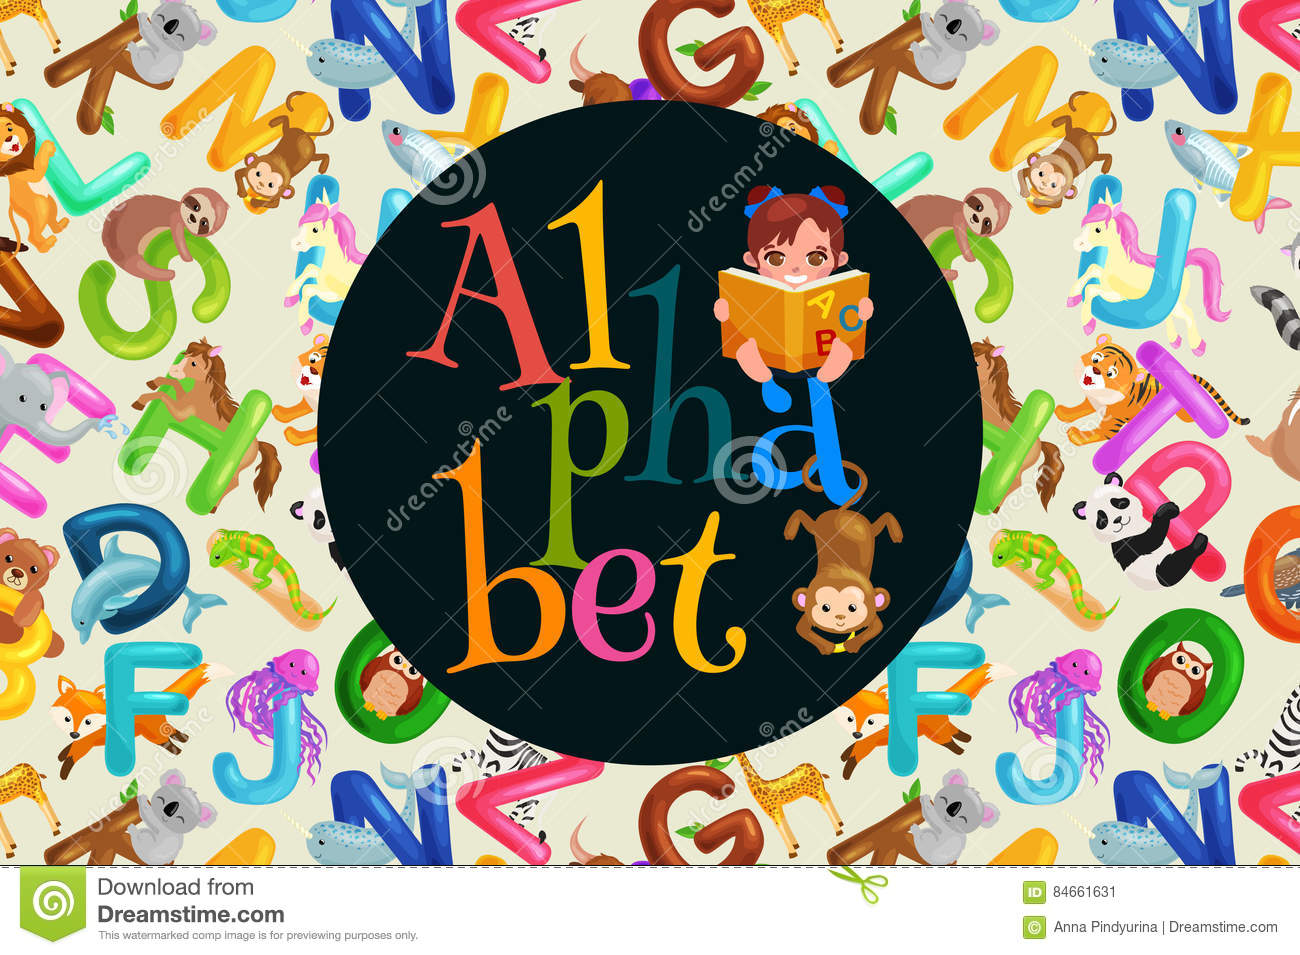 Set of animals alphabet for kids letters, cartoon fun abc education in preschool, cute children zoo collection learning